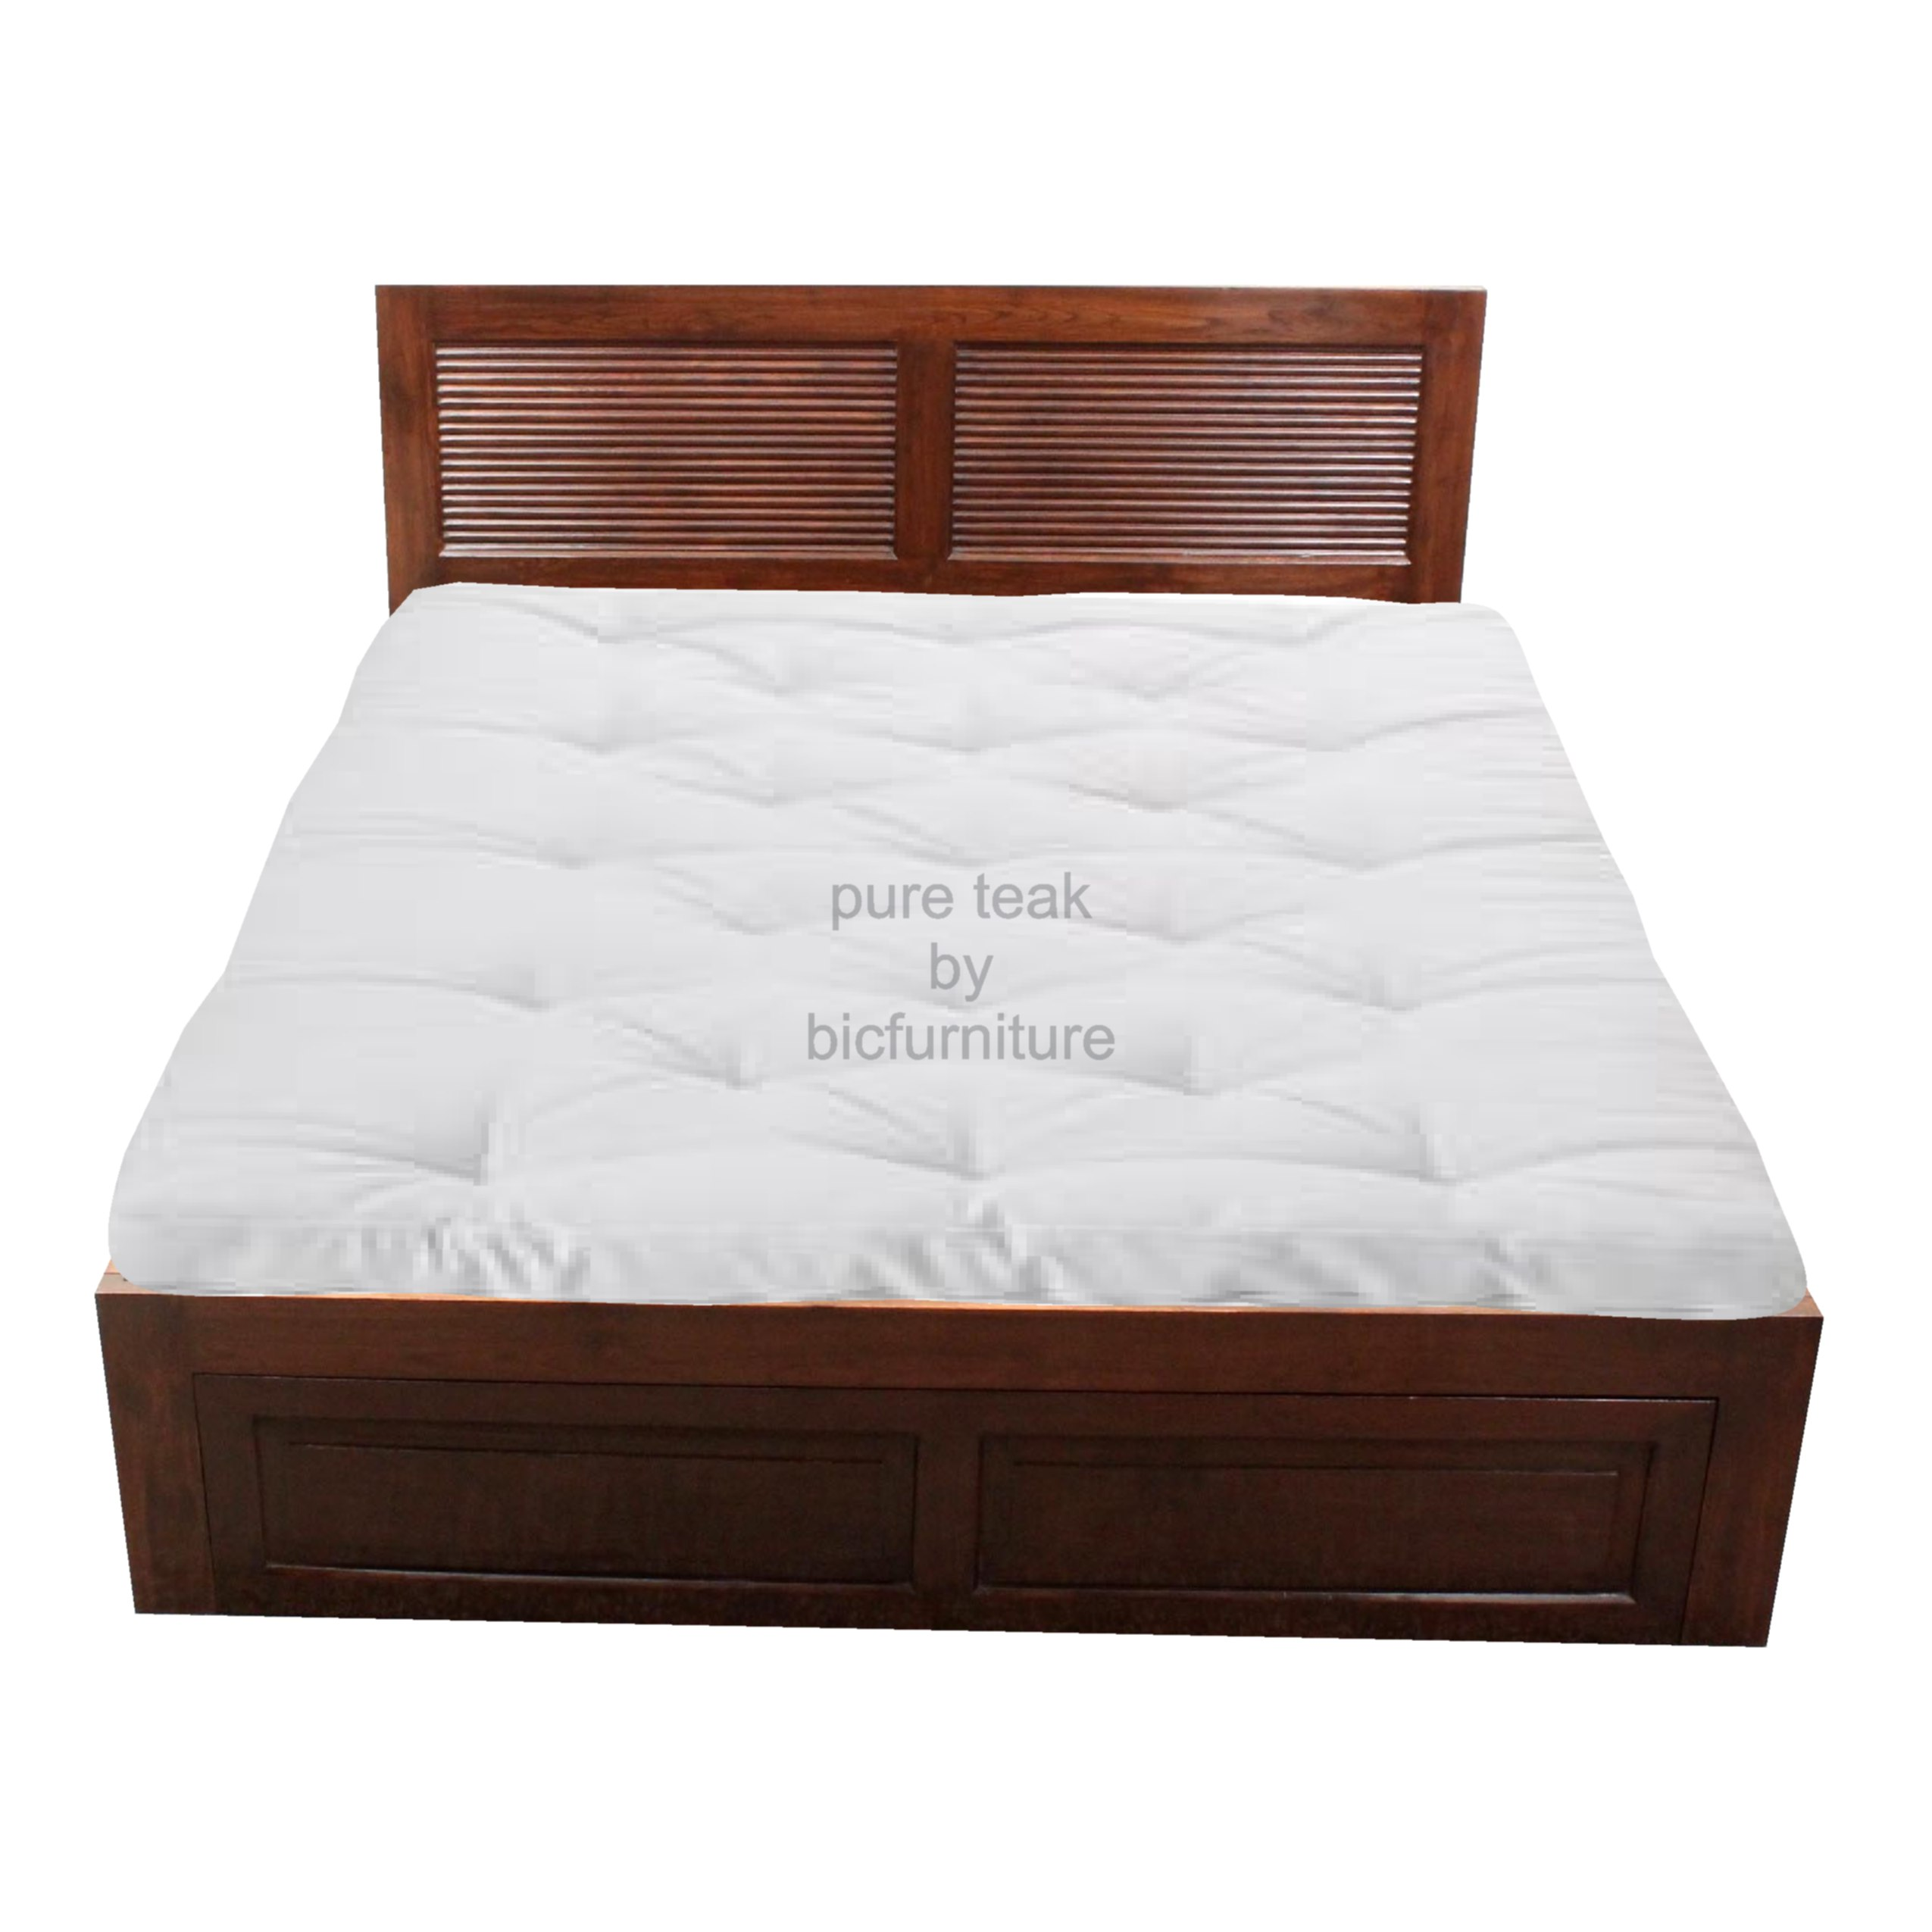 Teakwood_double_bed. Teakwood_double_bed_design. Teakwood_double_bed_front  Storage. Teakwood_double_bed_mumbai. Teakwood_double_bed_slats